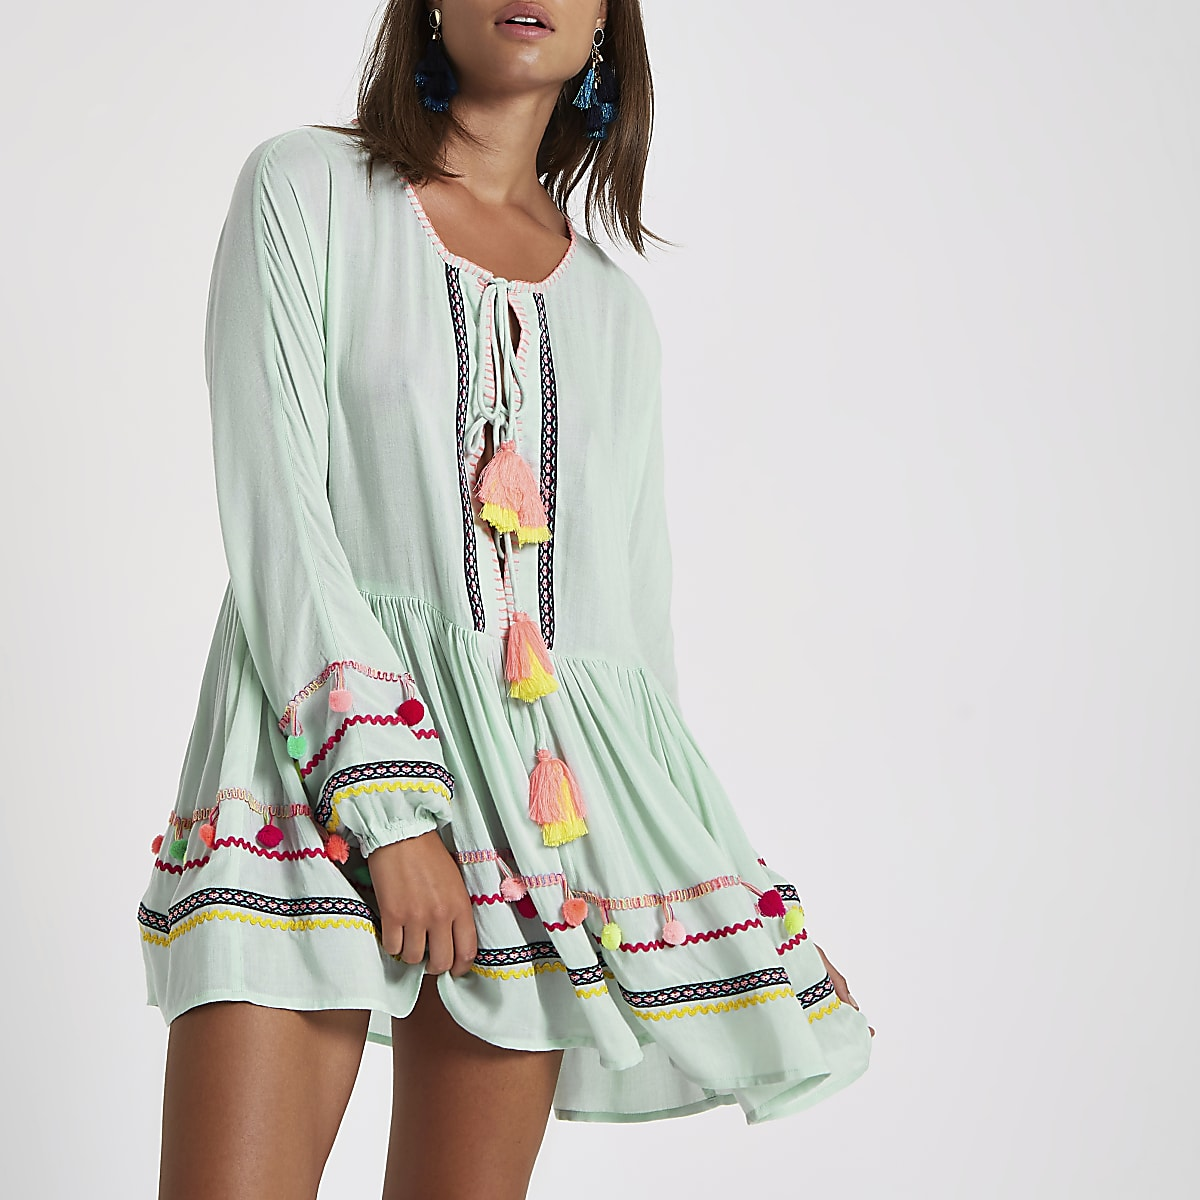 626bcd5200 Green pom pom oversized beach cover up - Kaftans & Beach Cover-Ups -  Swimwear & Beachwear - women